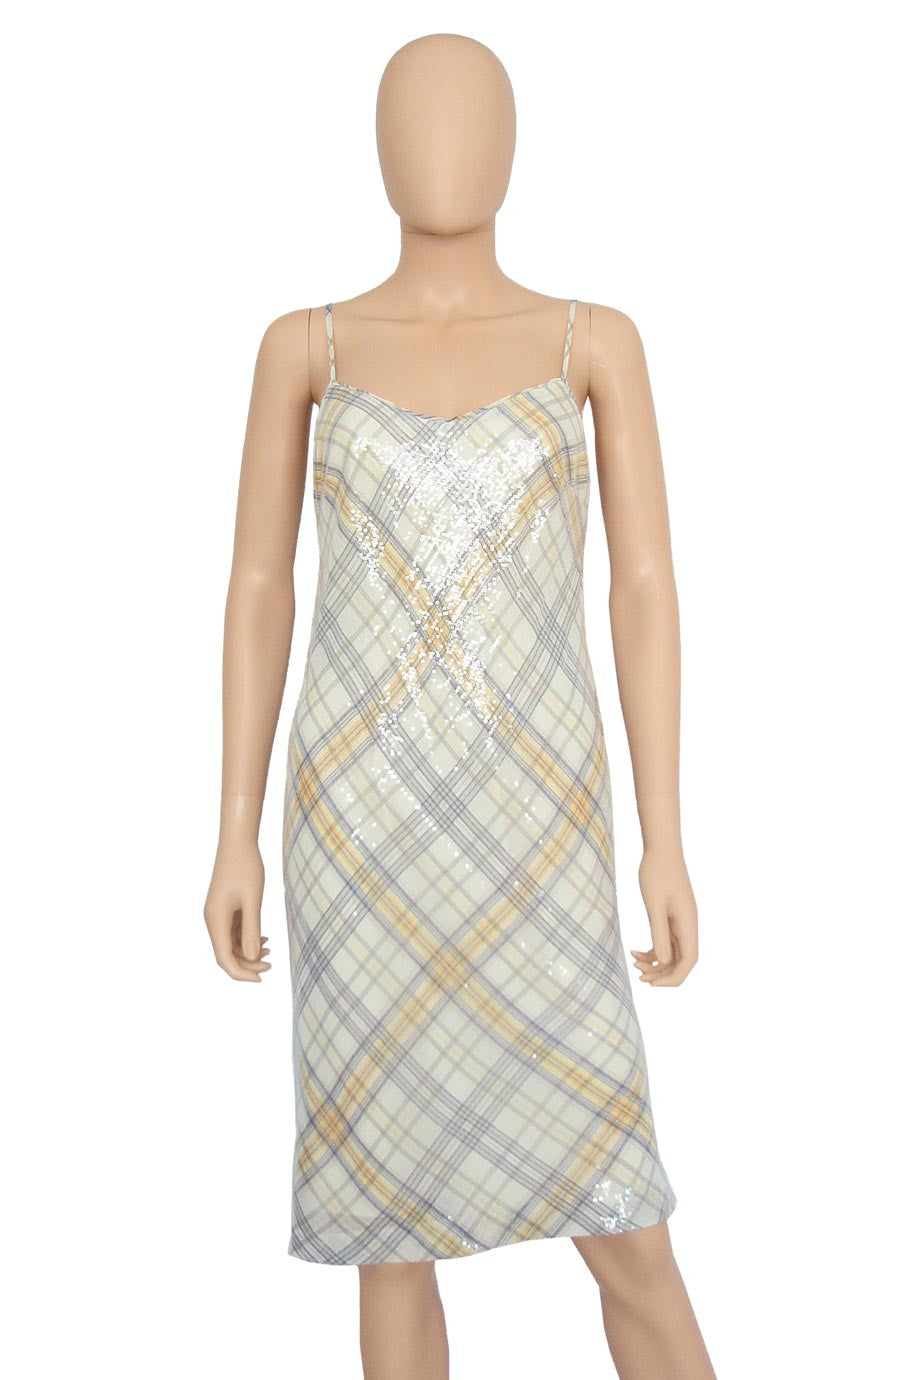 W By Worth Plaid Sequin Spaghetti Strap Cocktail Dress / Sz 2-Style Therapy